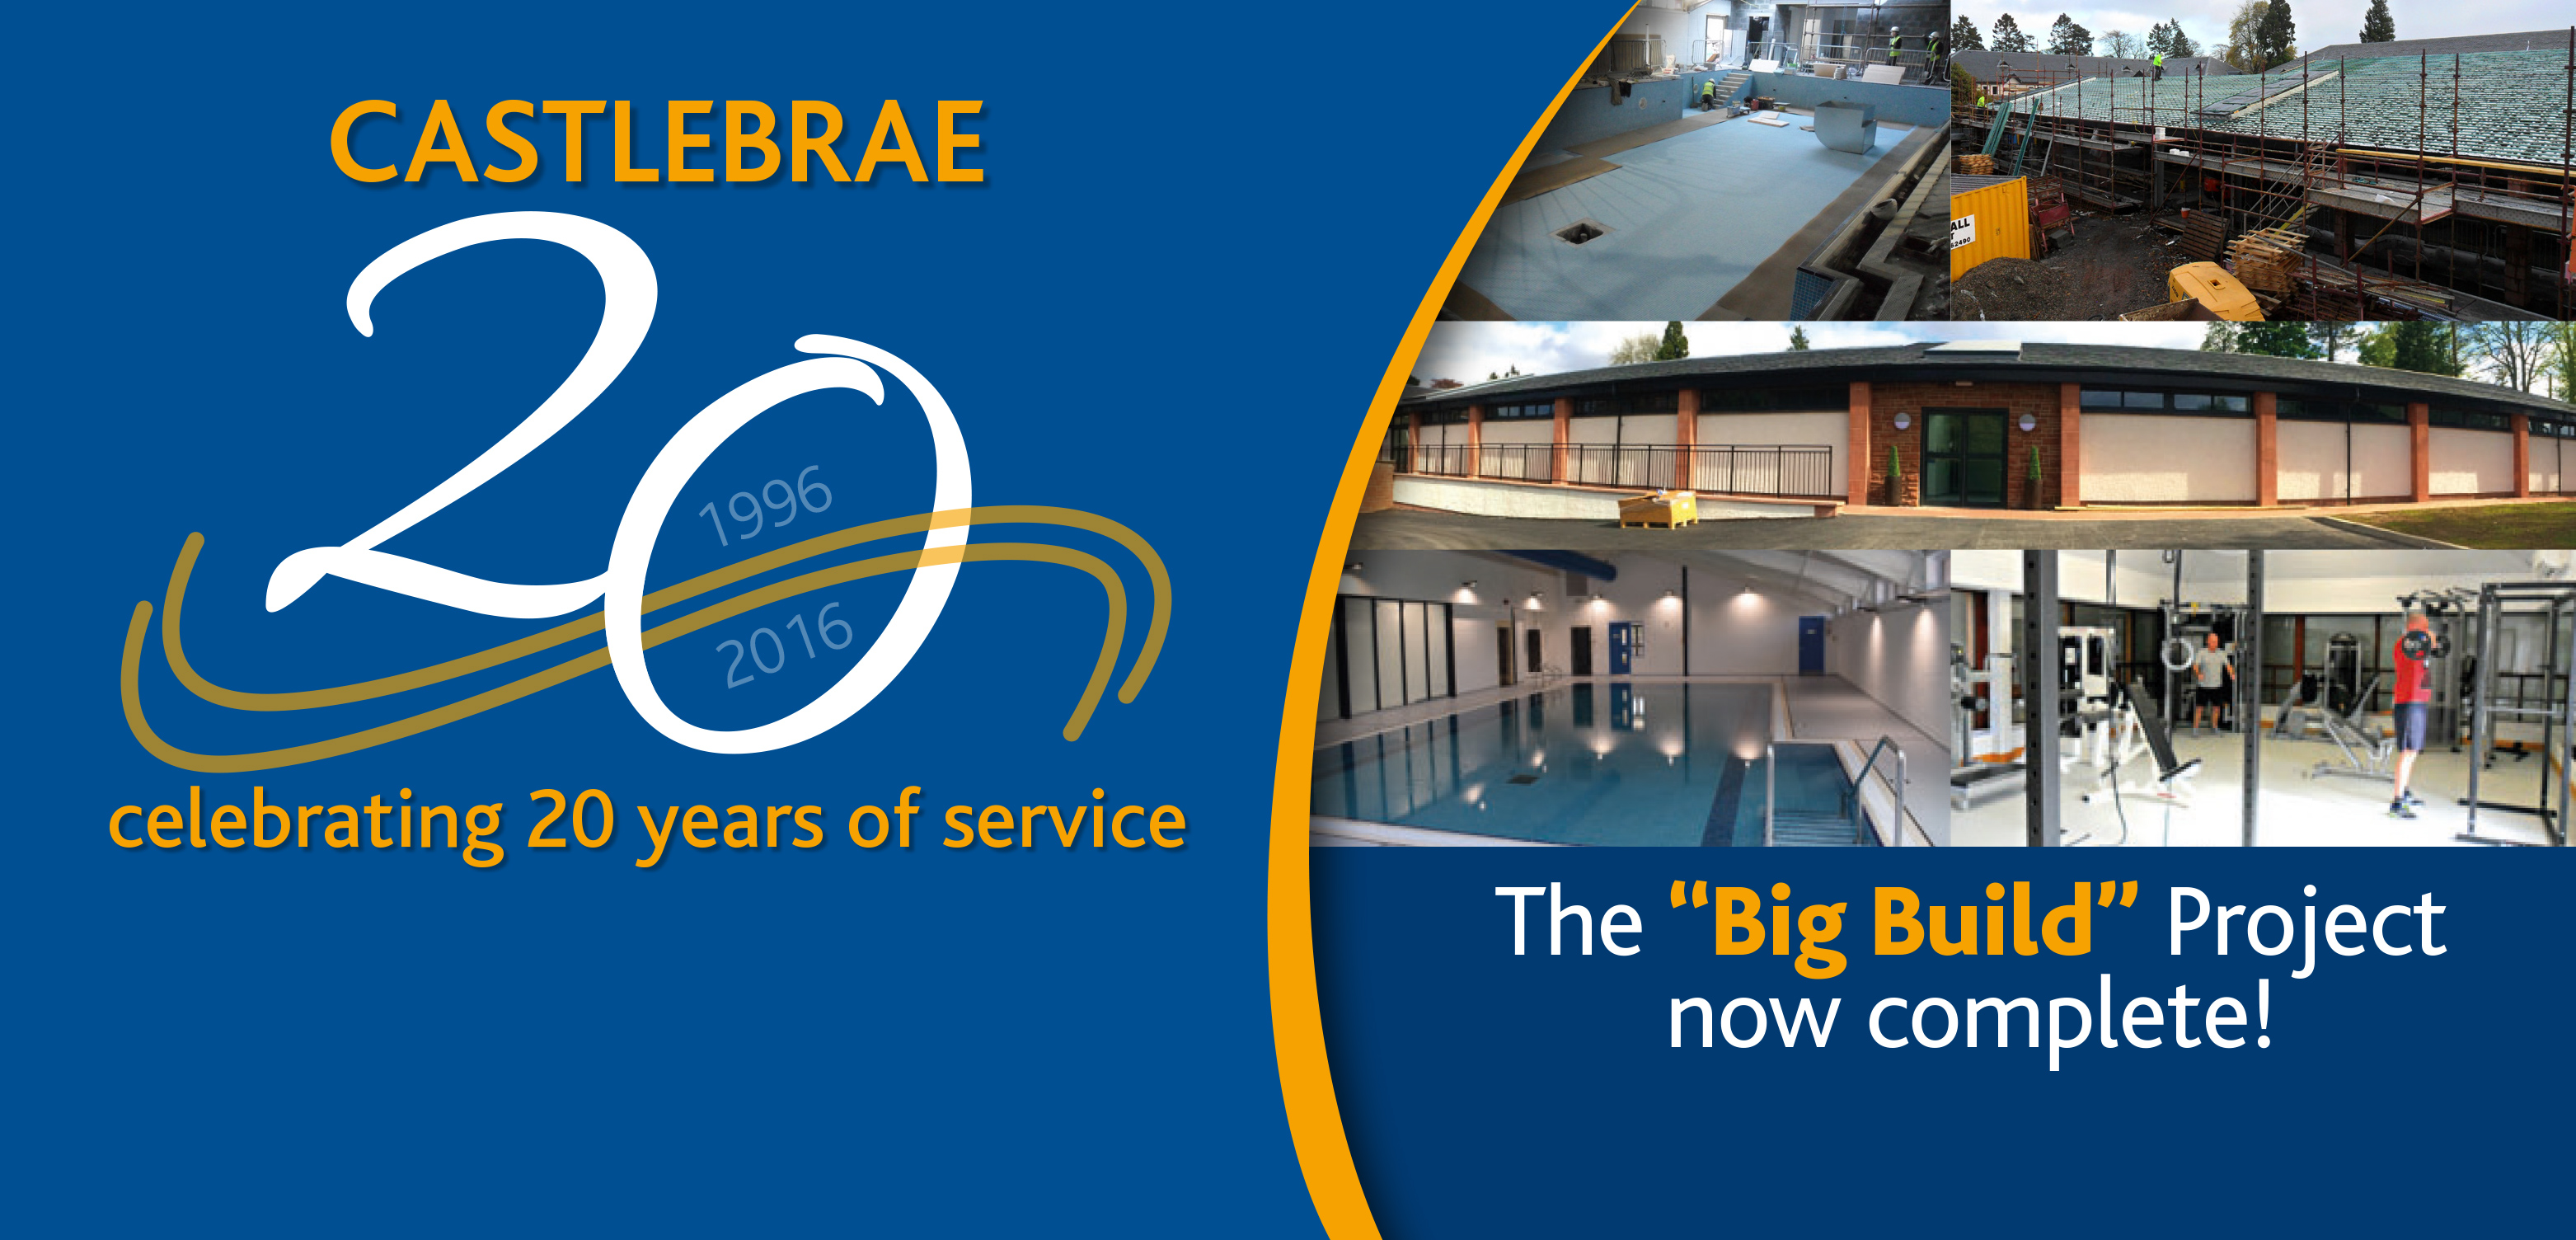 Castlebrae - 20 Years of Service